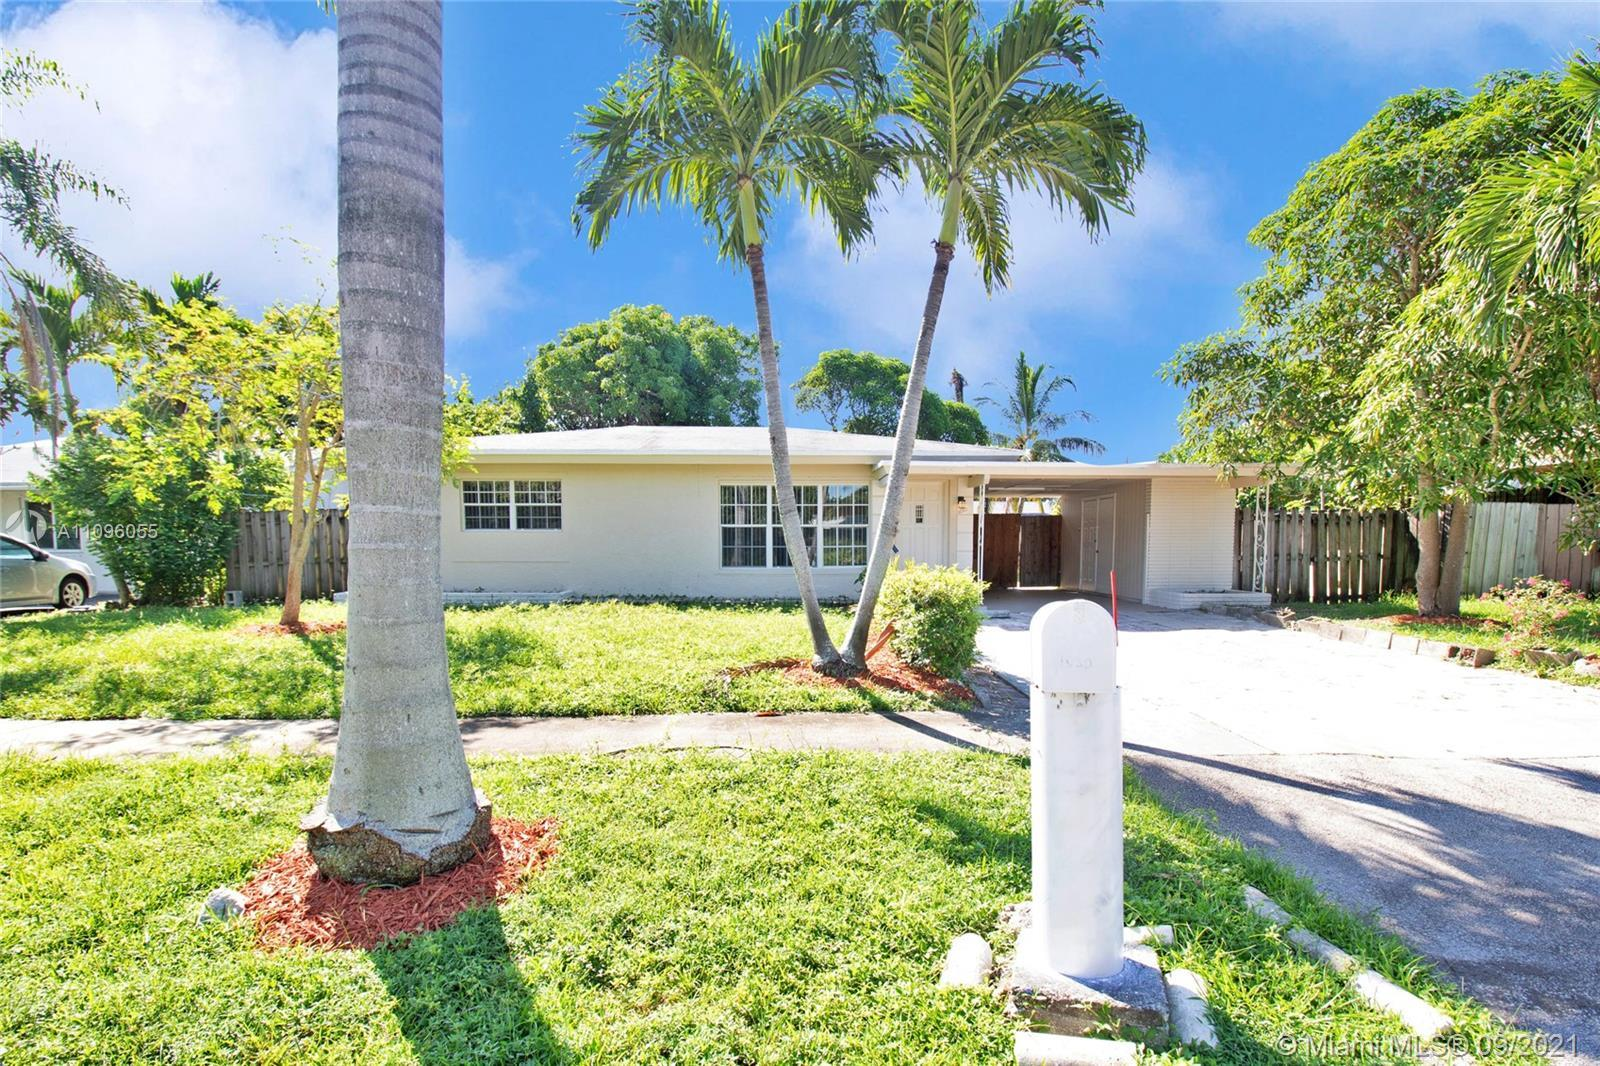 3 BEDROOMS 2 BATHROOMS HOME IN FORT LAUDERDALE. NEIGHBORHOOD CLOSE TO DOWNTOWN FORT LAUDERDALE AND B